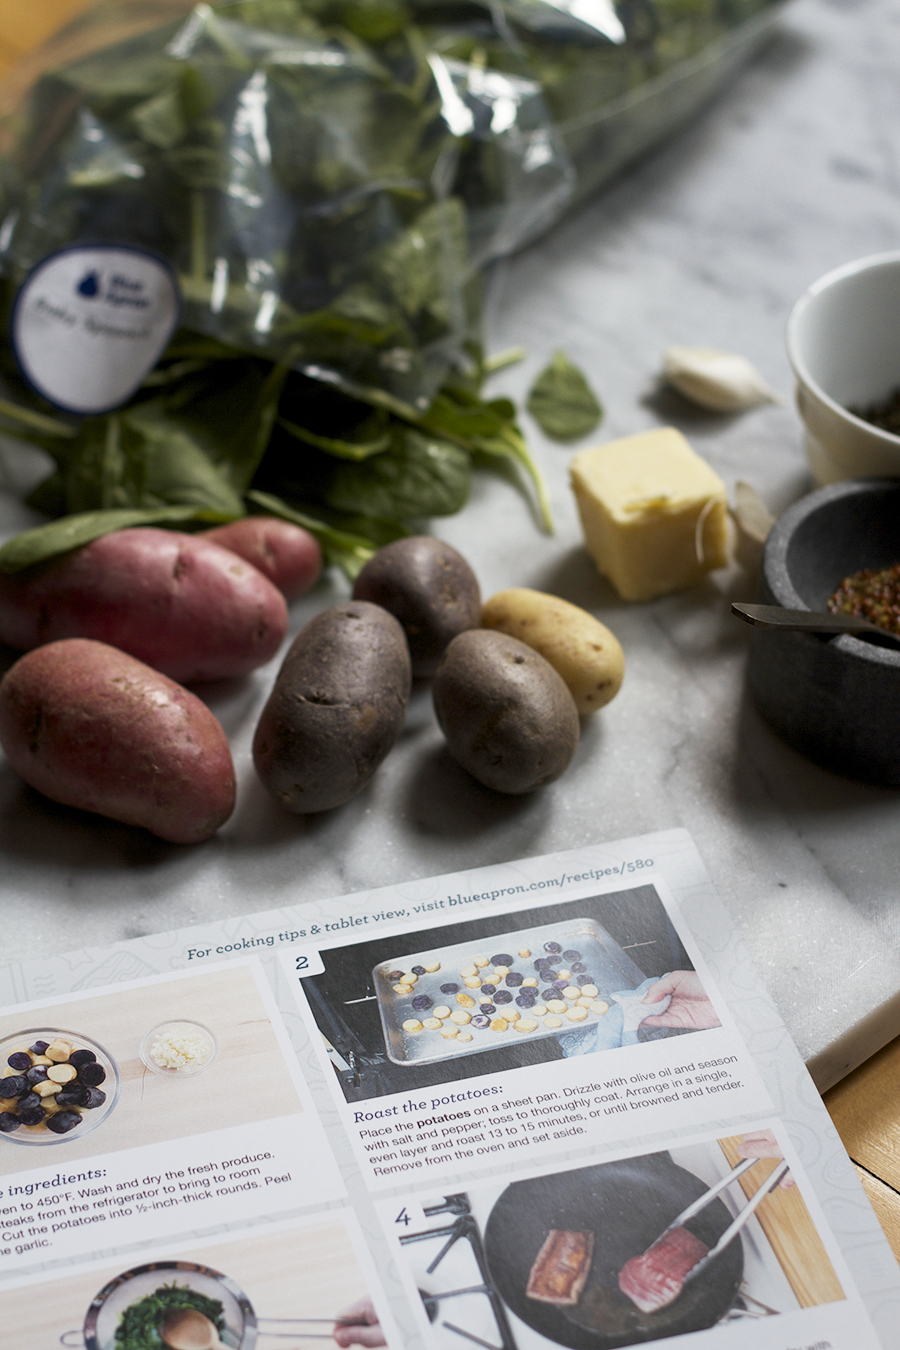 Date Night With Blue Apron